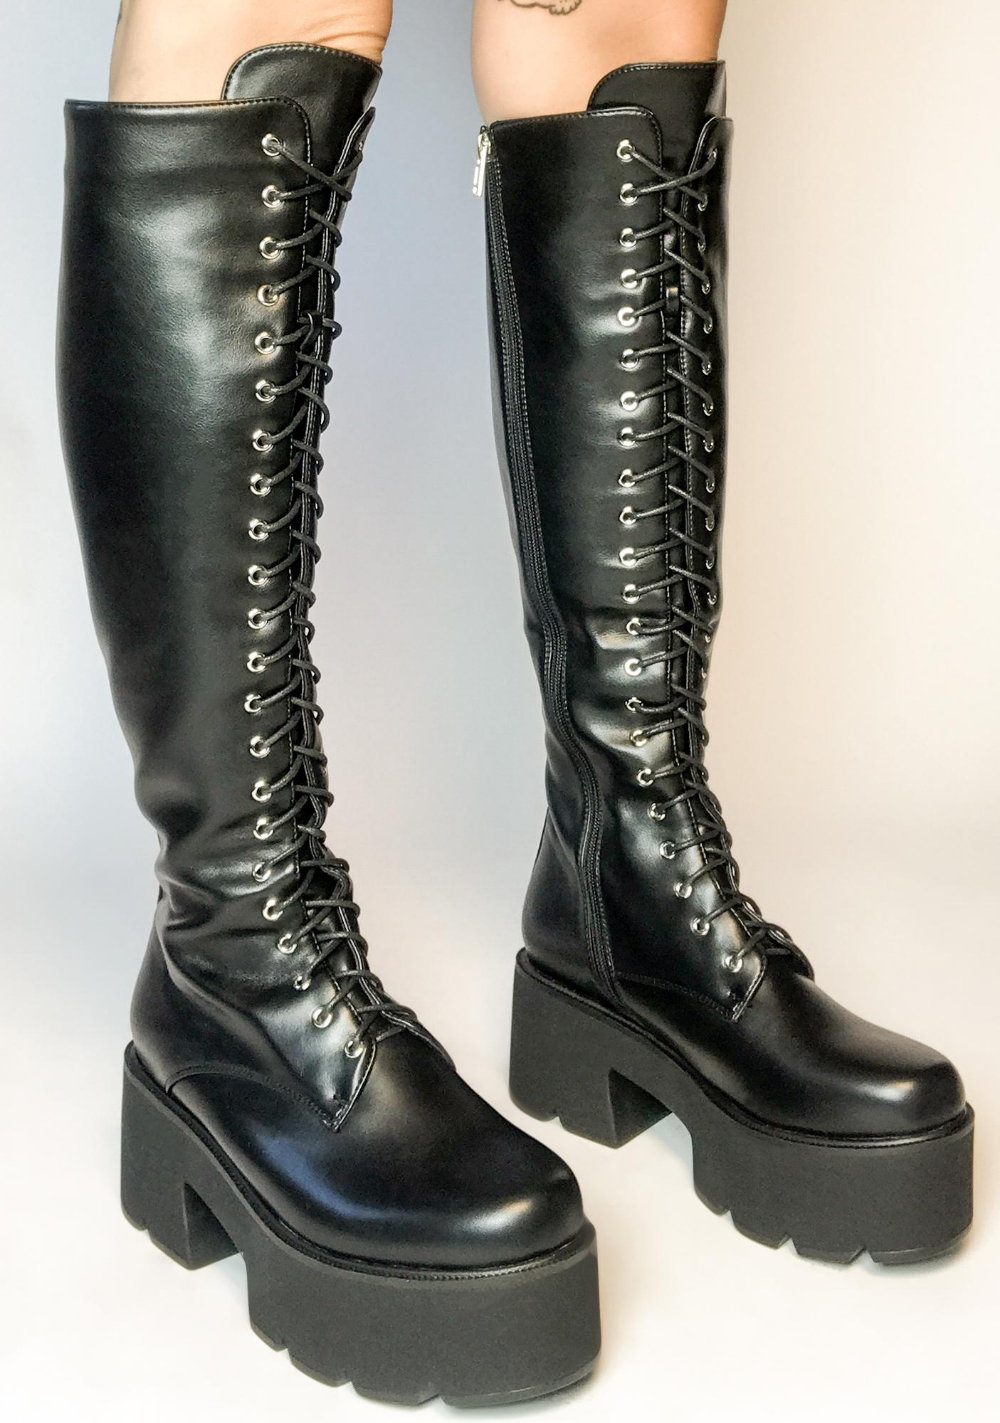 Makin' Changes Knee High Boots